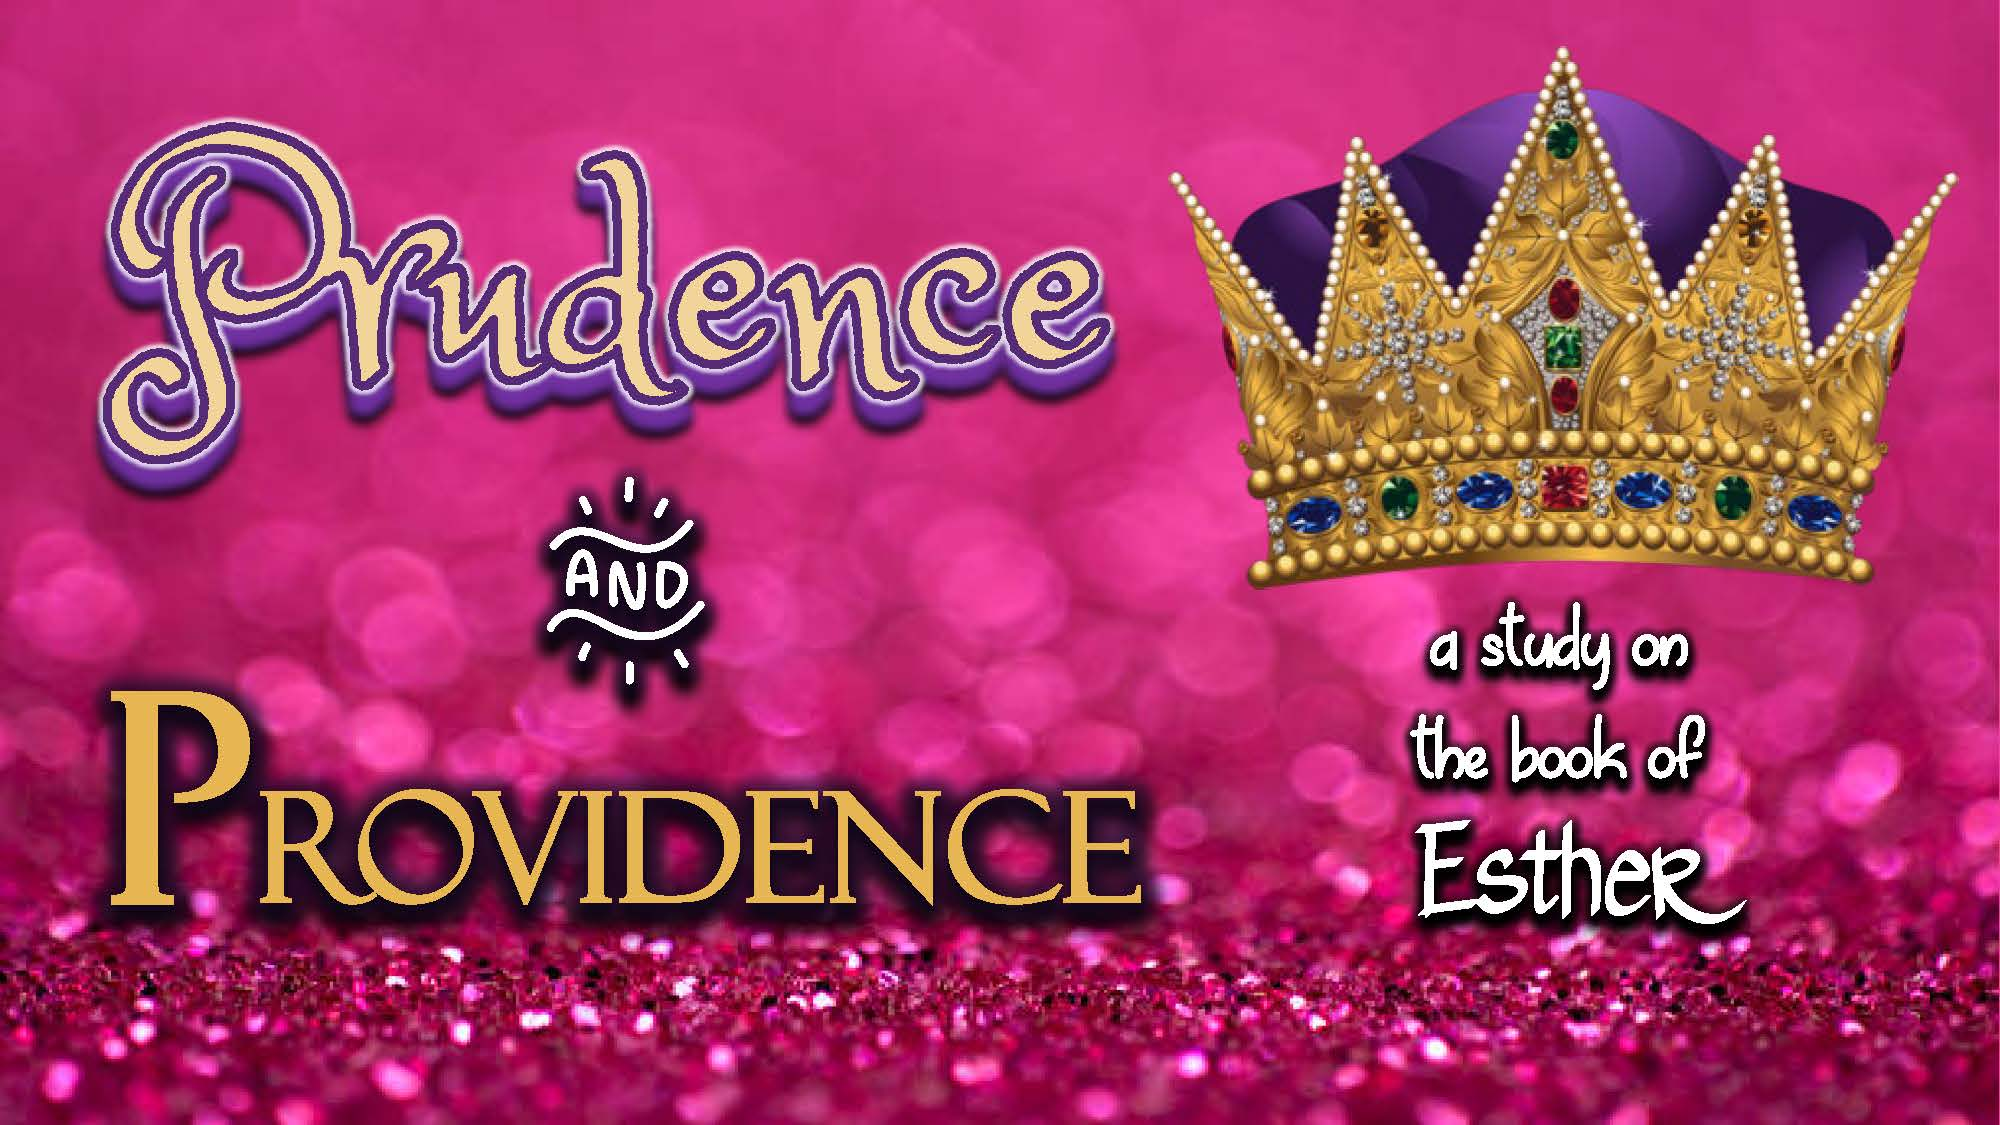 Prudence & Providence, Session 4:  Jennifer's Bible Study on the Book of Esther